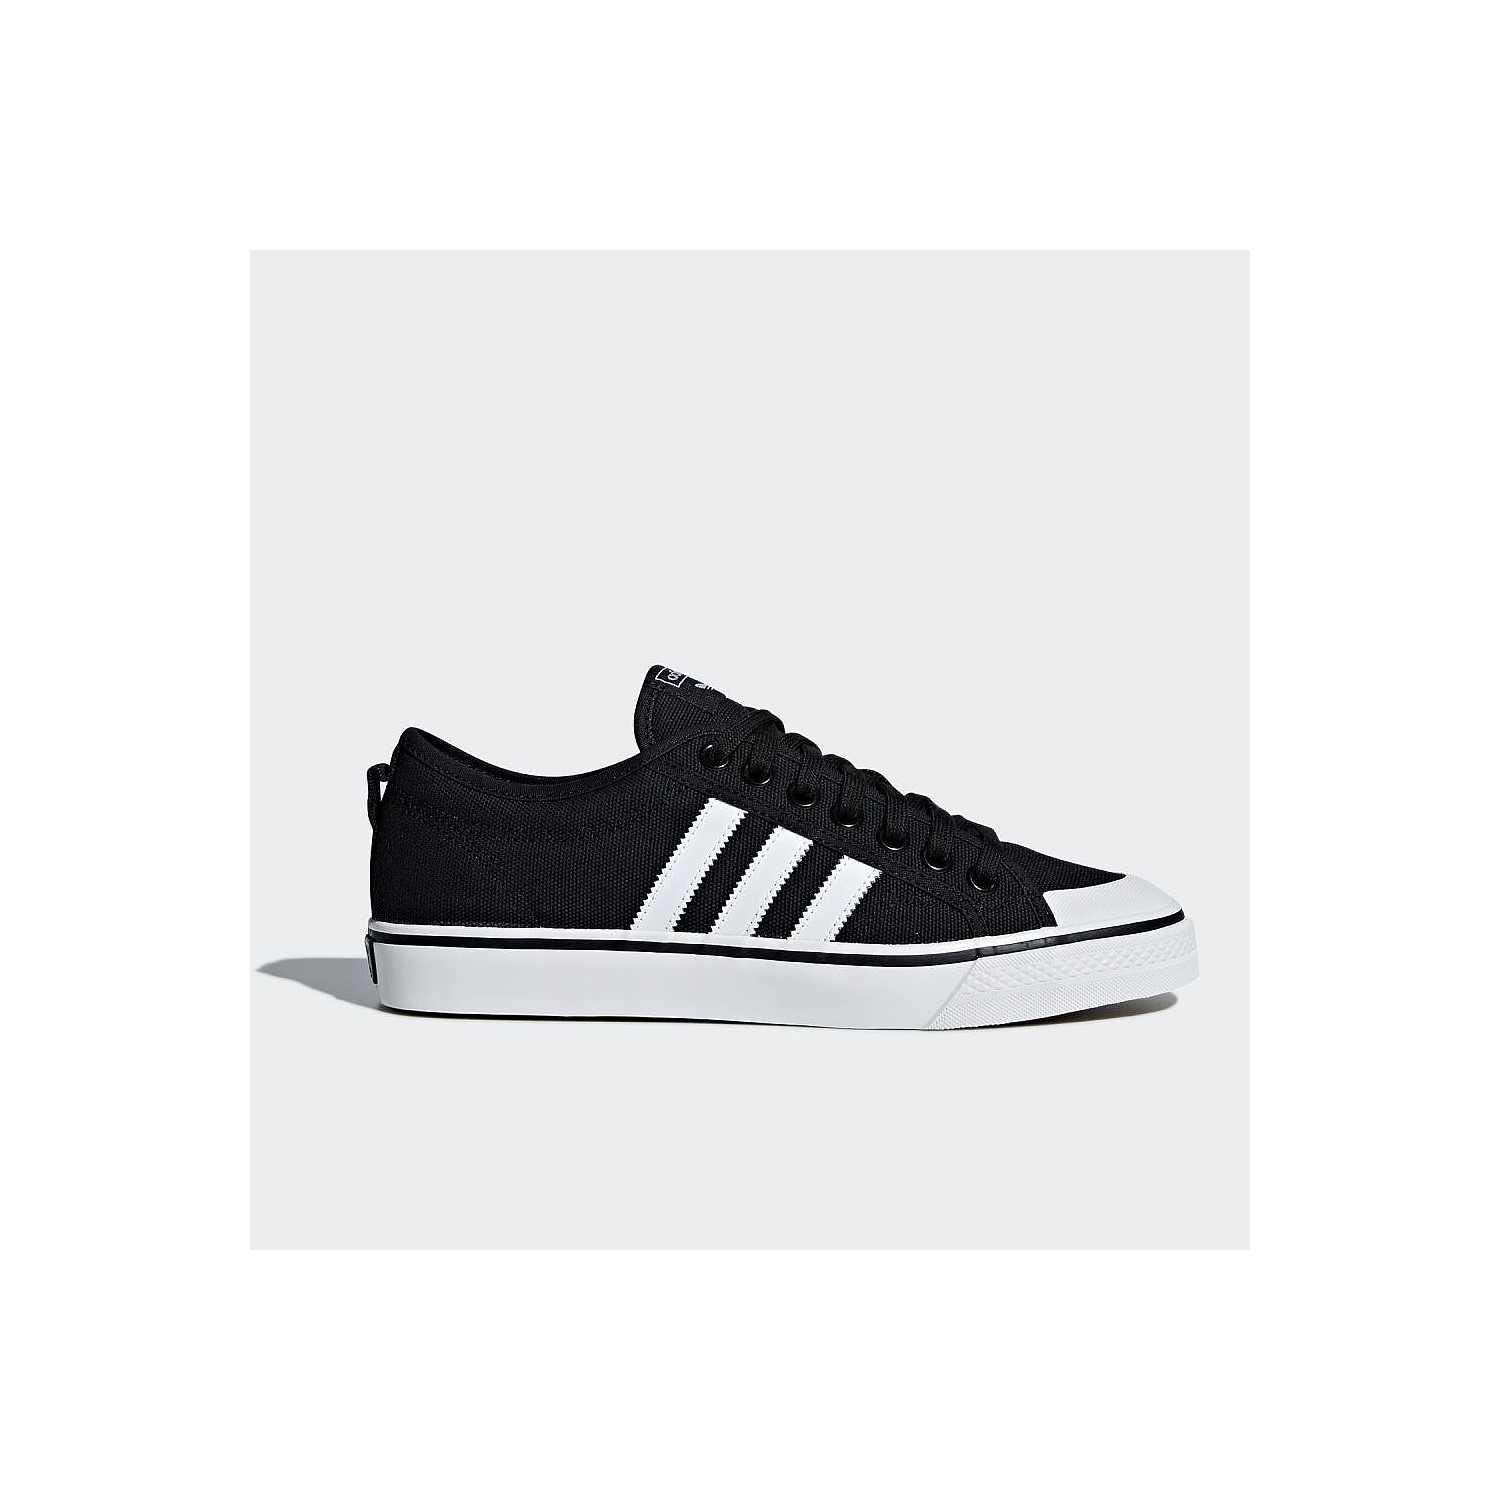 timeless design d9143 cb7d5 Women s Footwear   Women s Lifestyle and Training Shoes Online   Stirling  Sports - Nizza Unisex